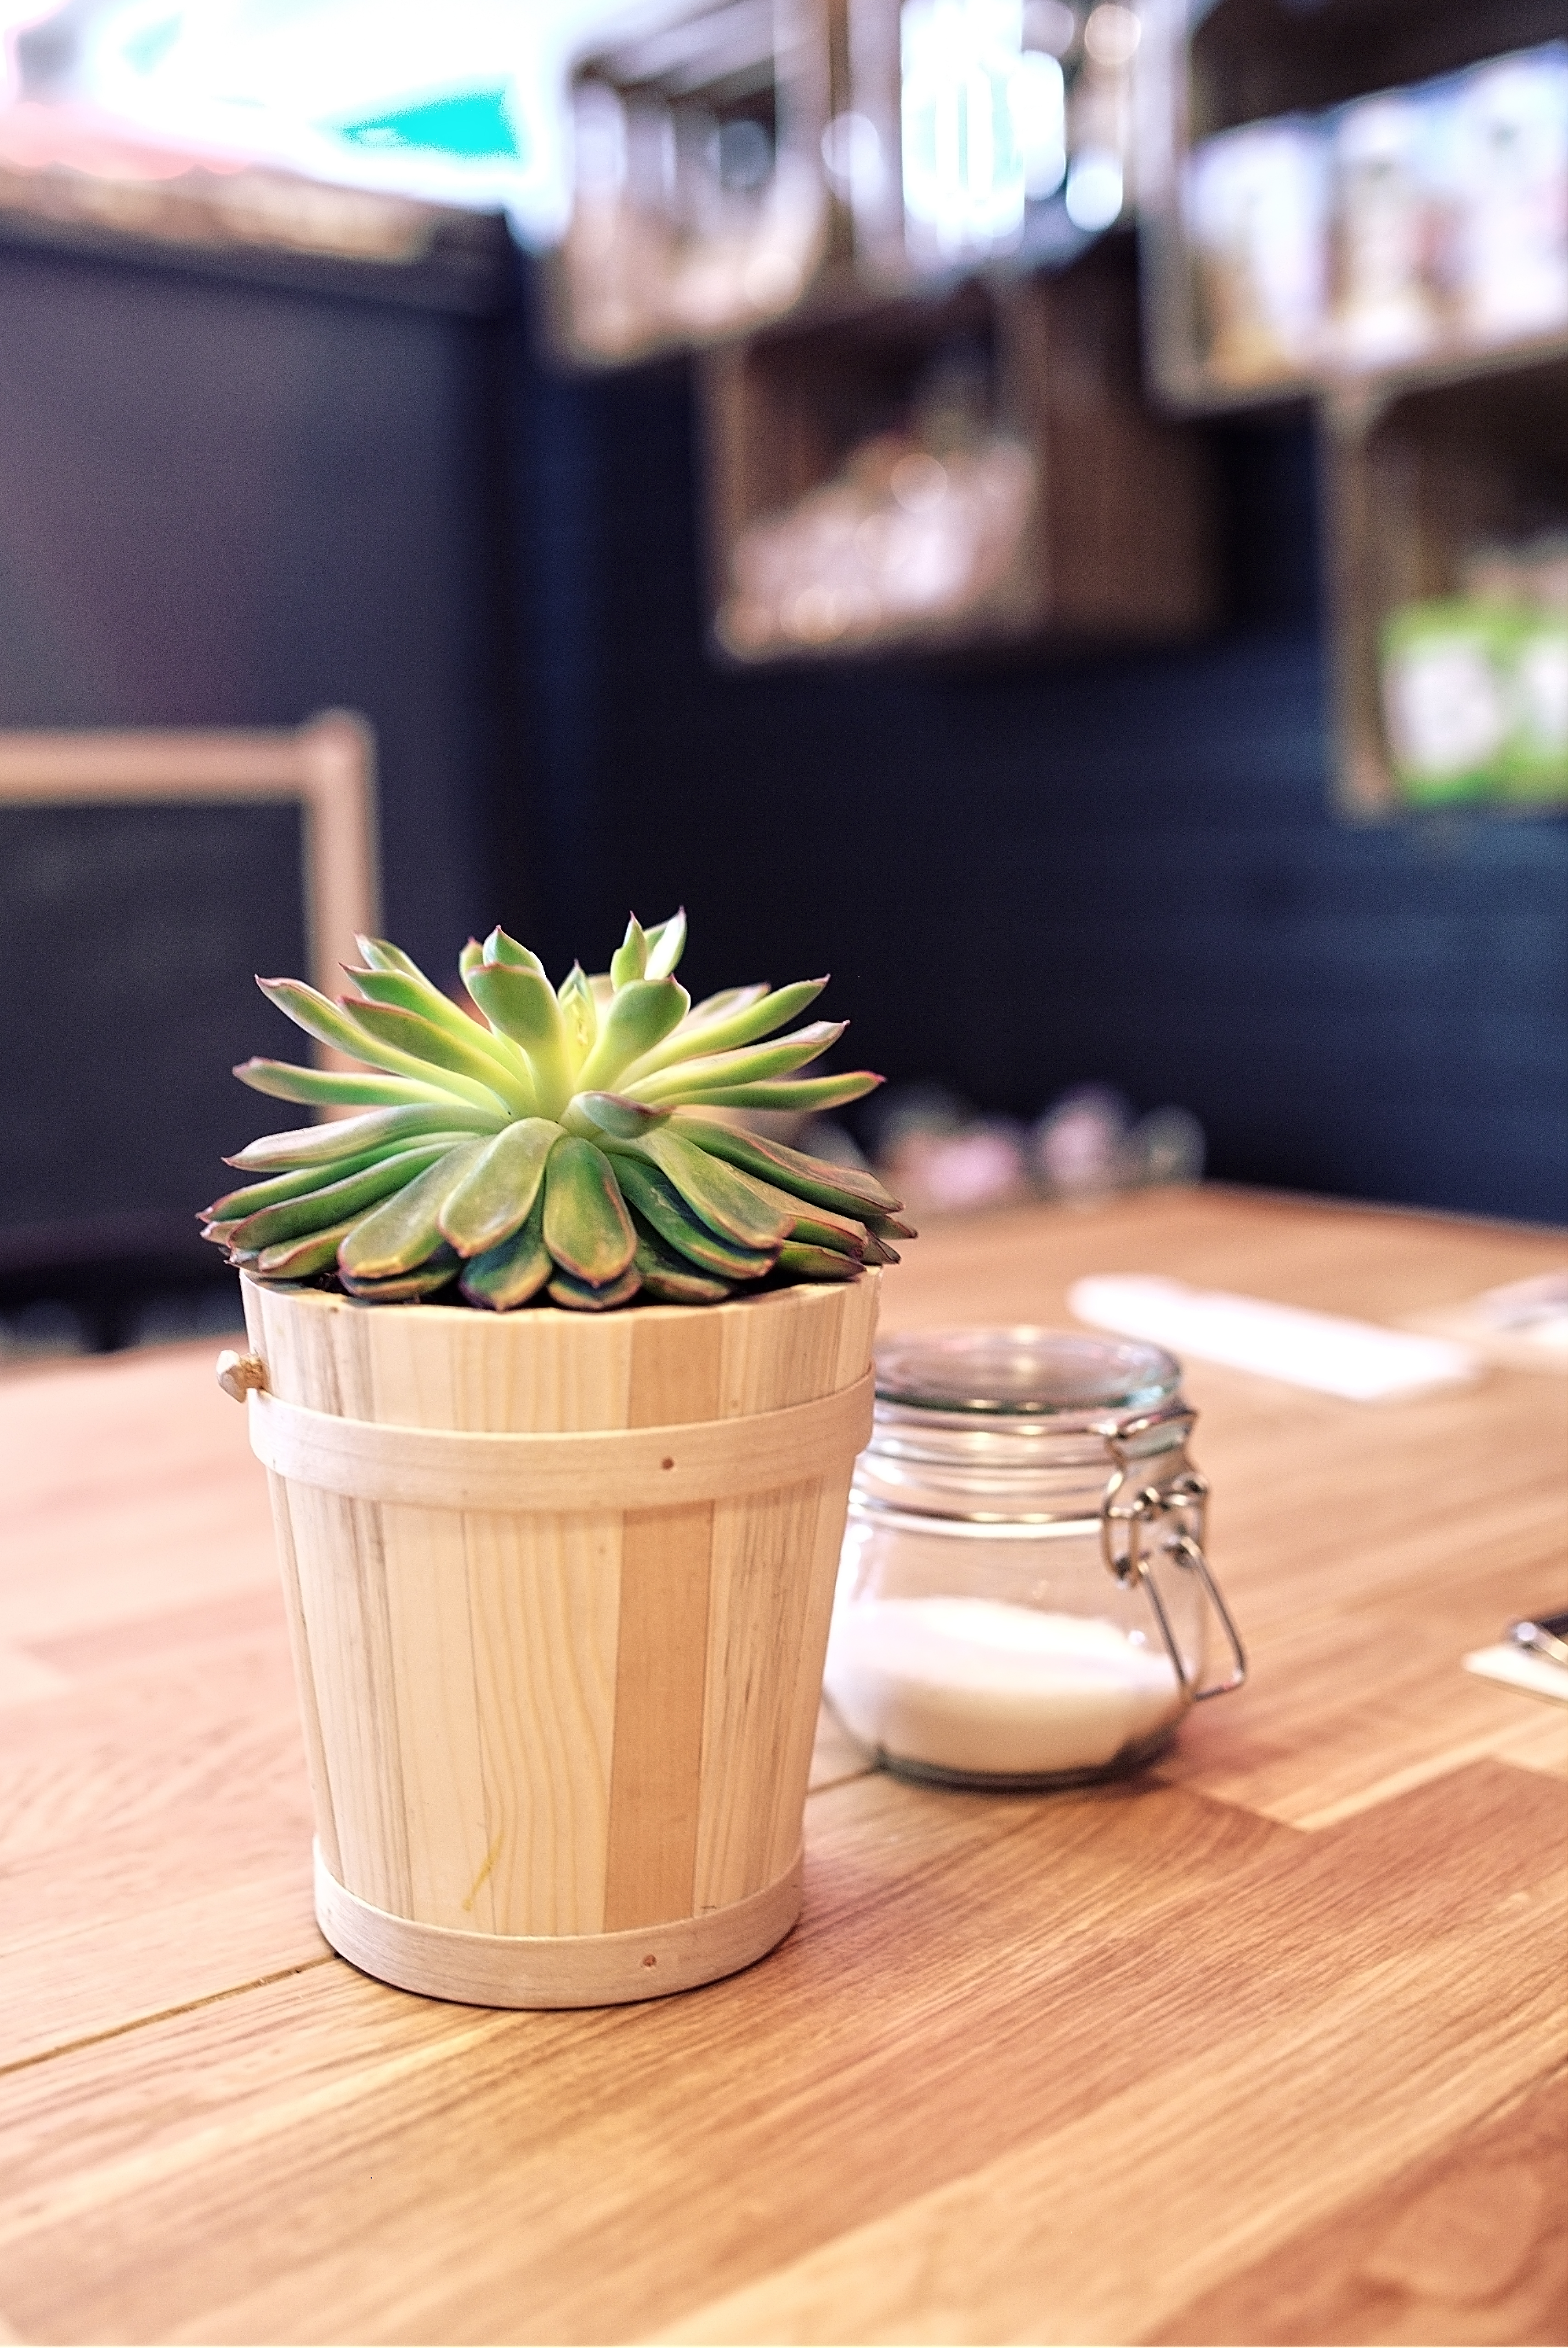 Plant On The Table 183 Free Stock Photo